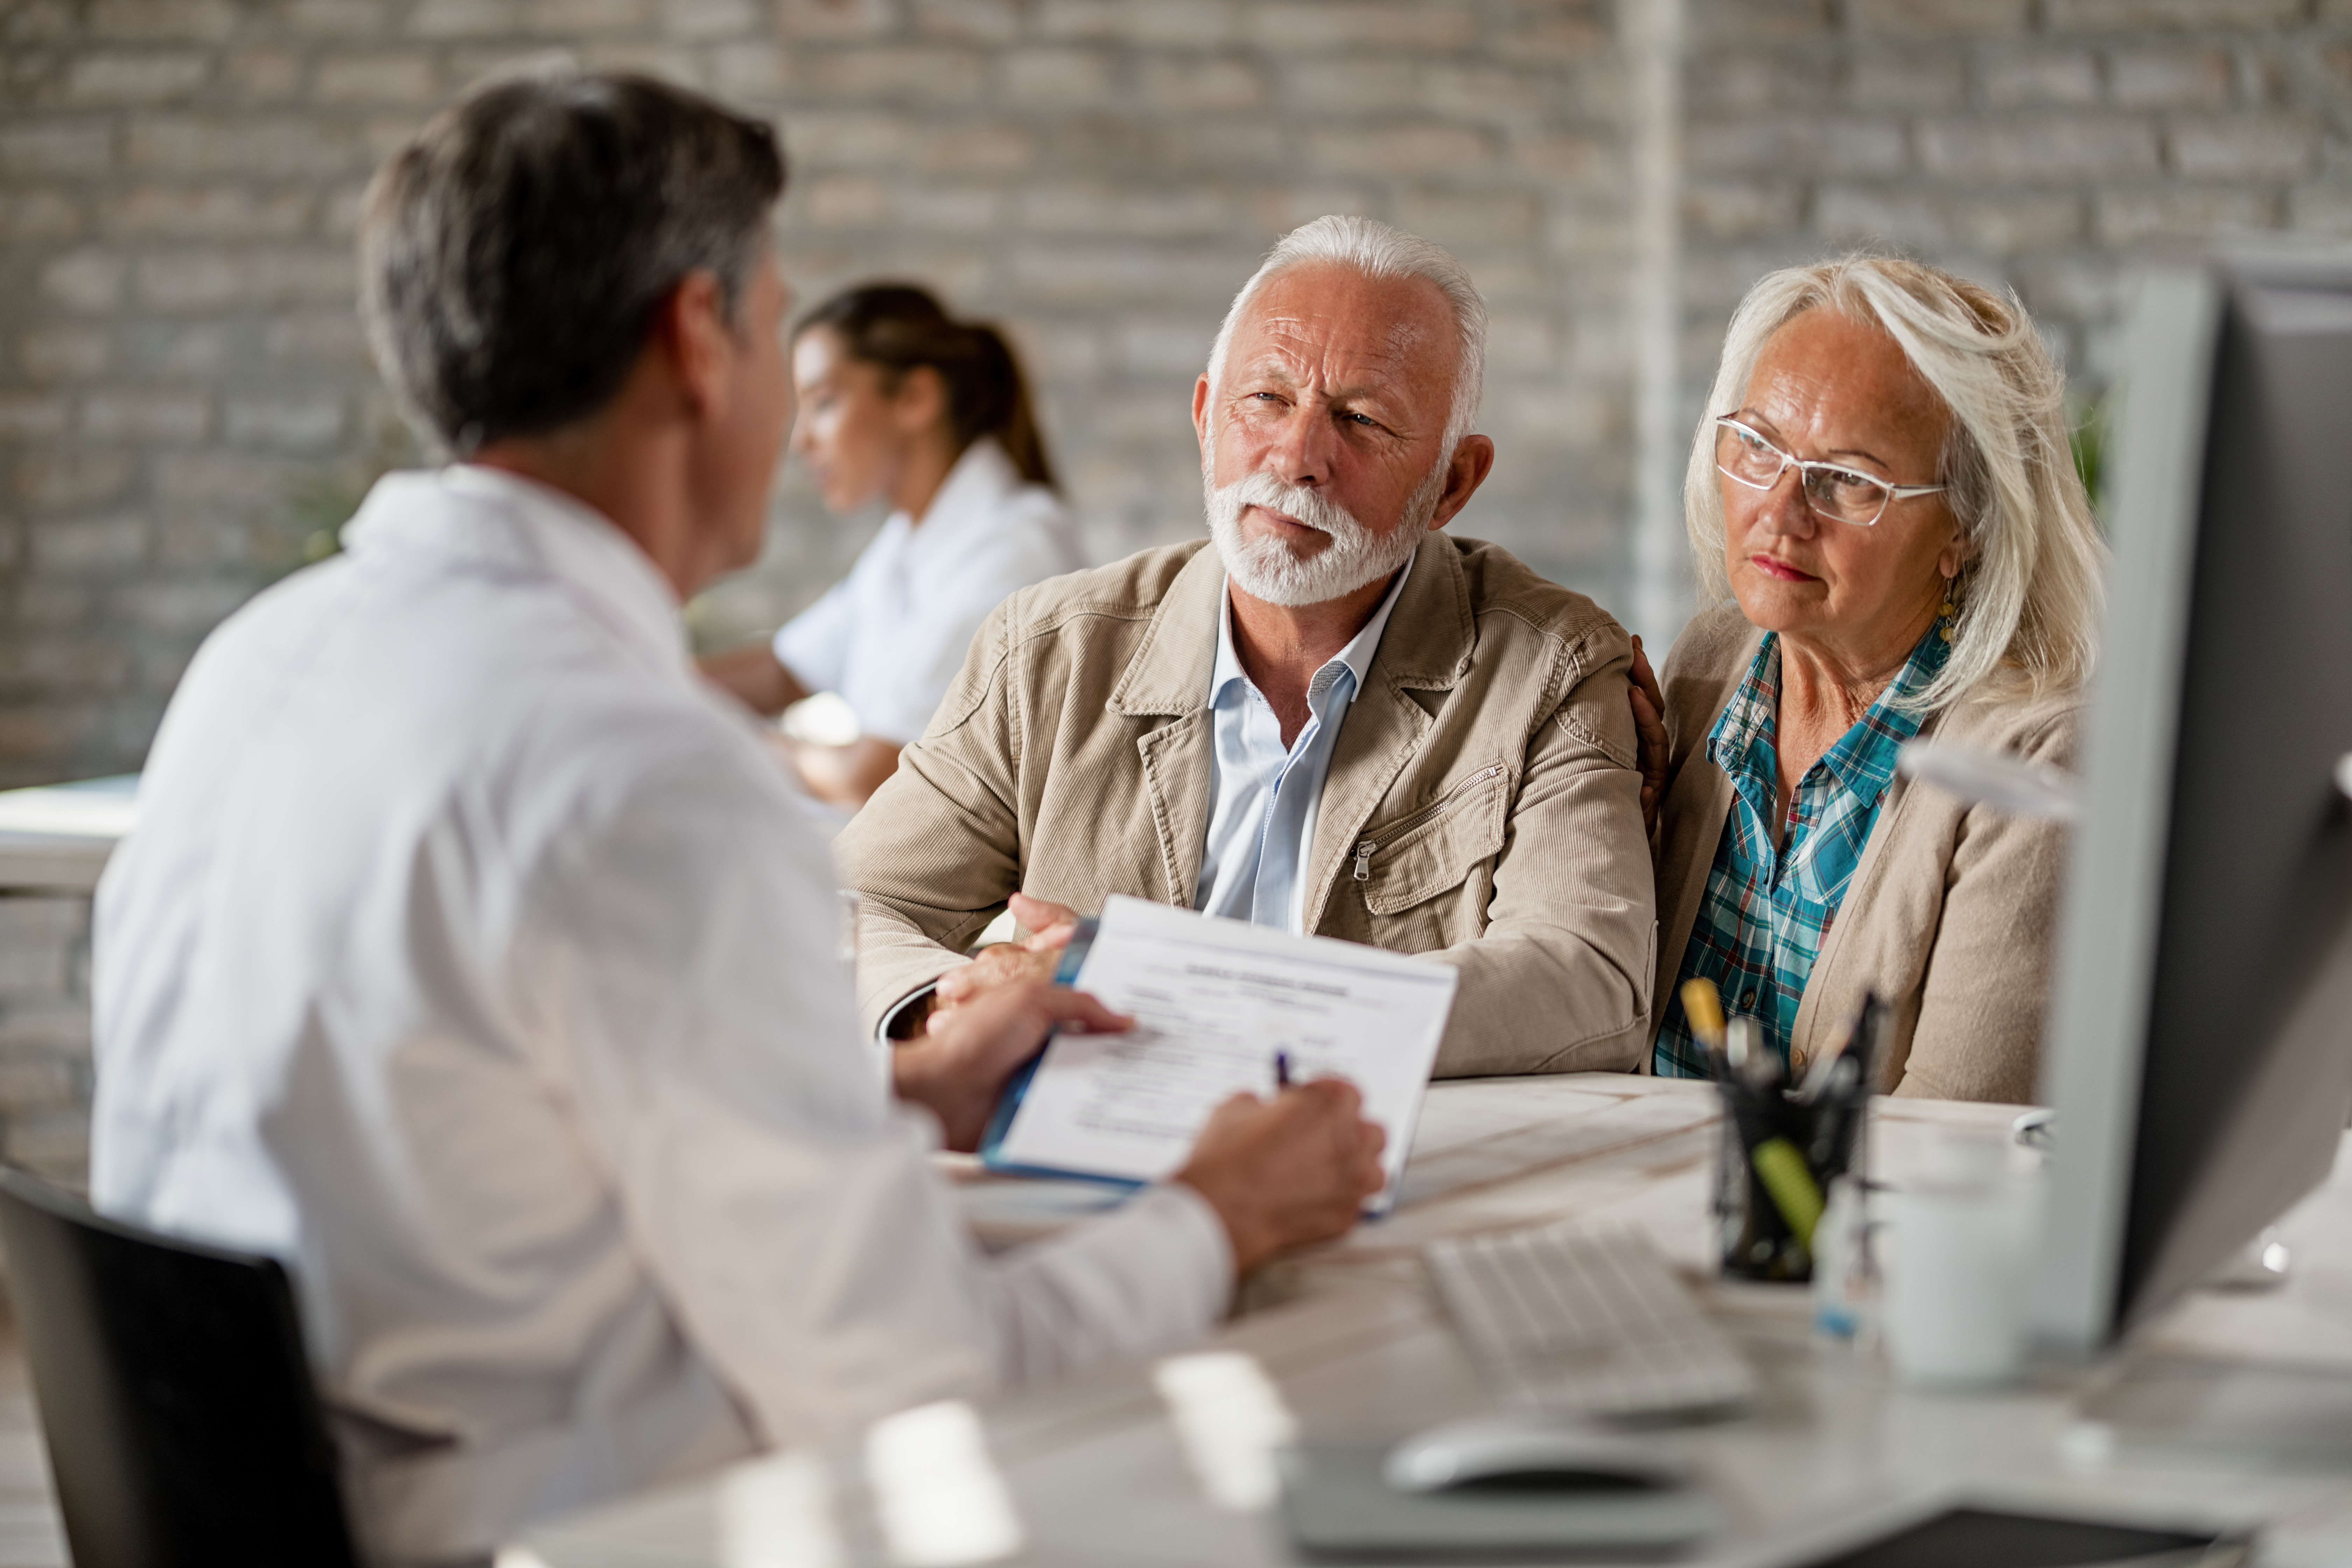 Medicare: What You Need to Know